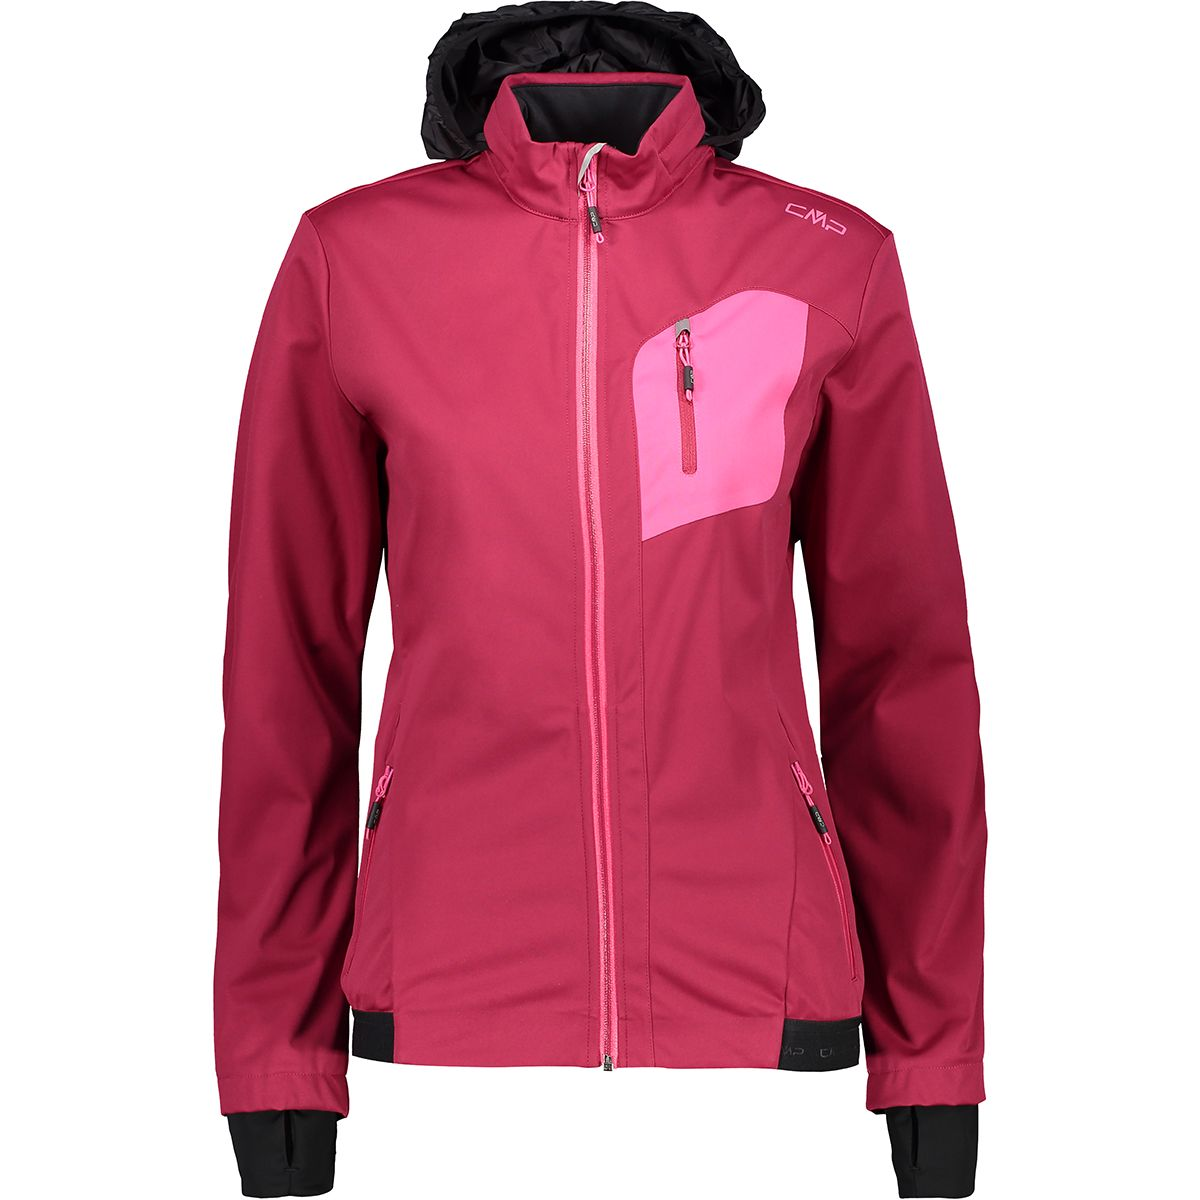 CMP Damen Light Softshell Jacke (Größe XS, Pink) | Softshelljacken > Damen